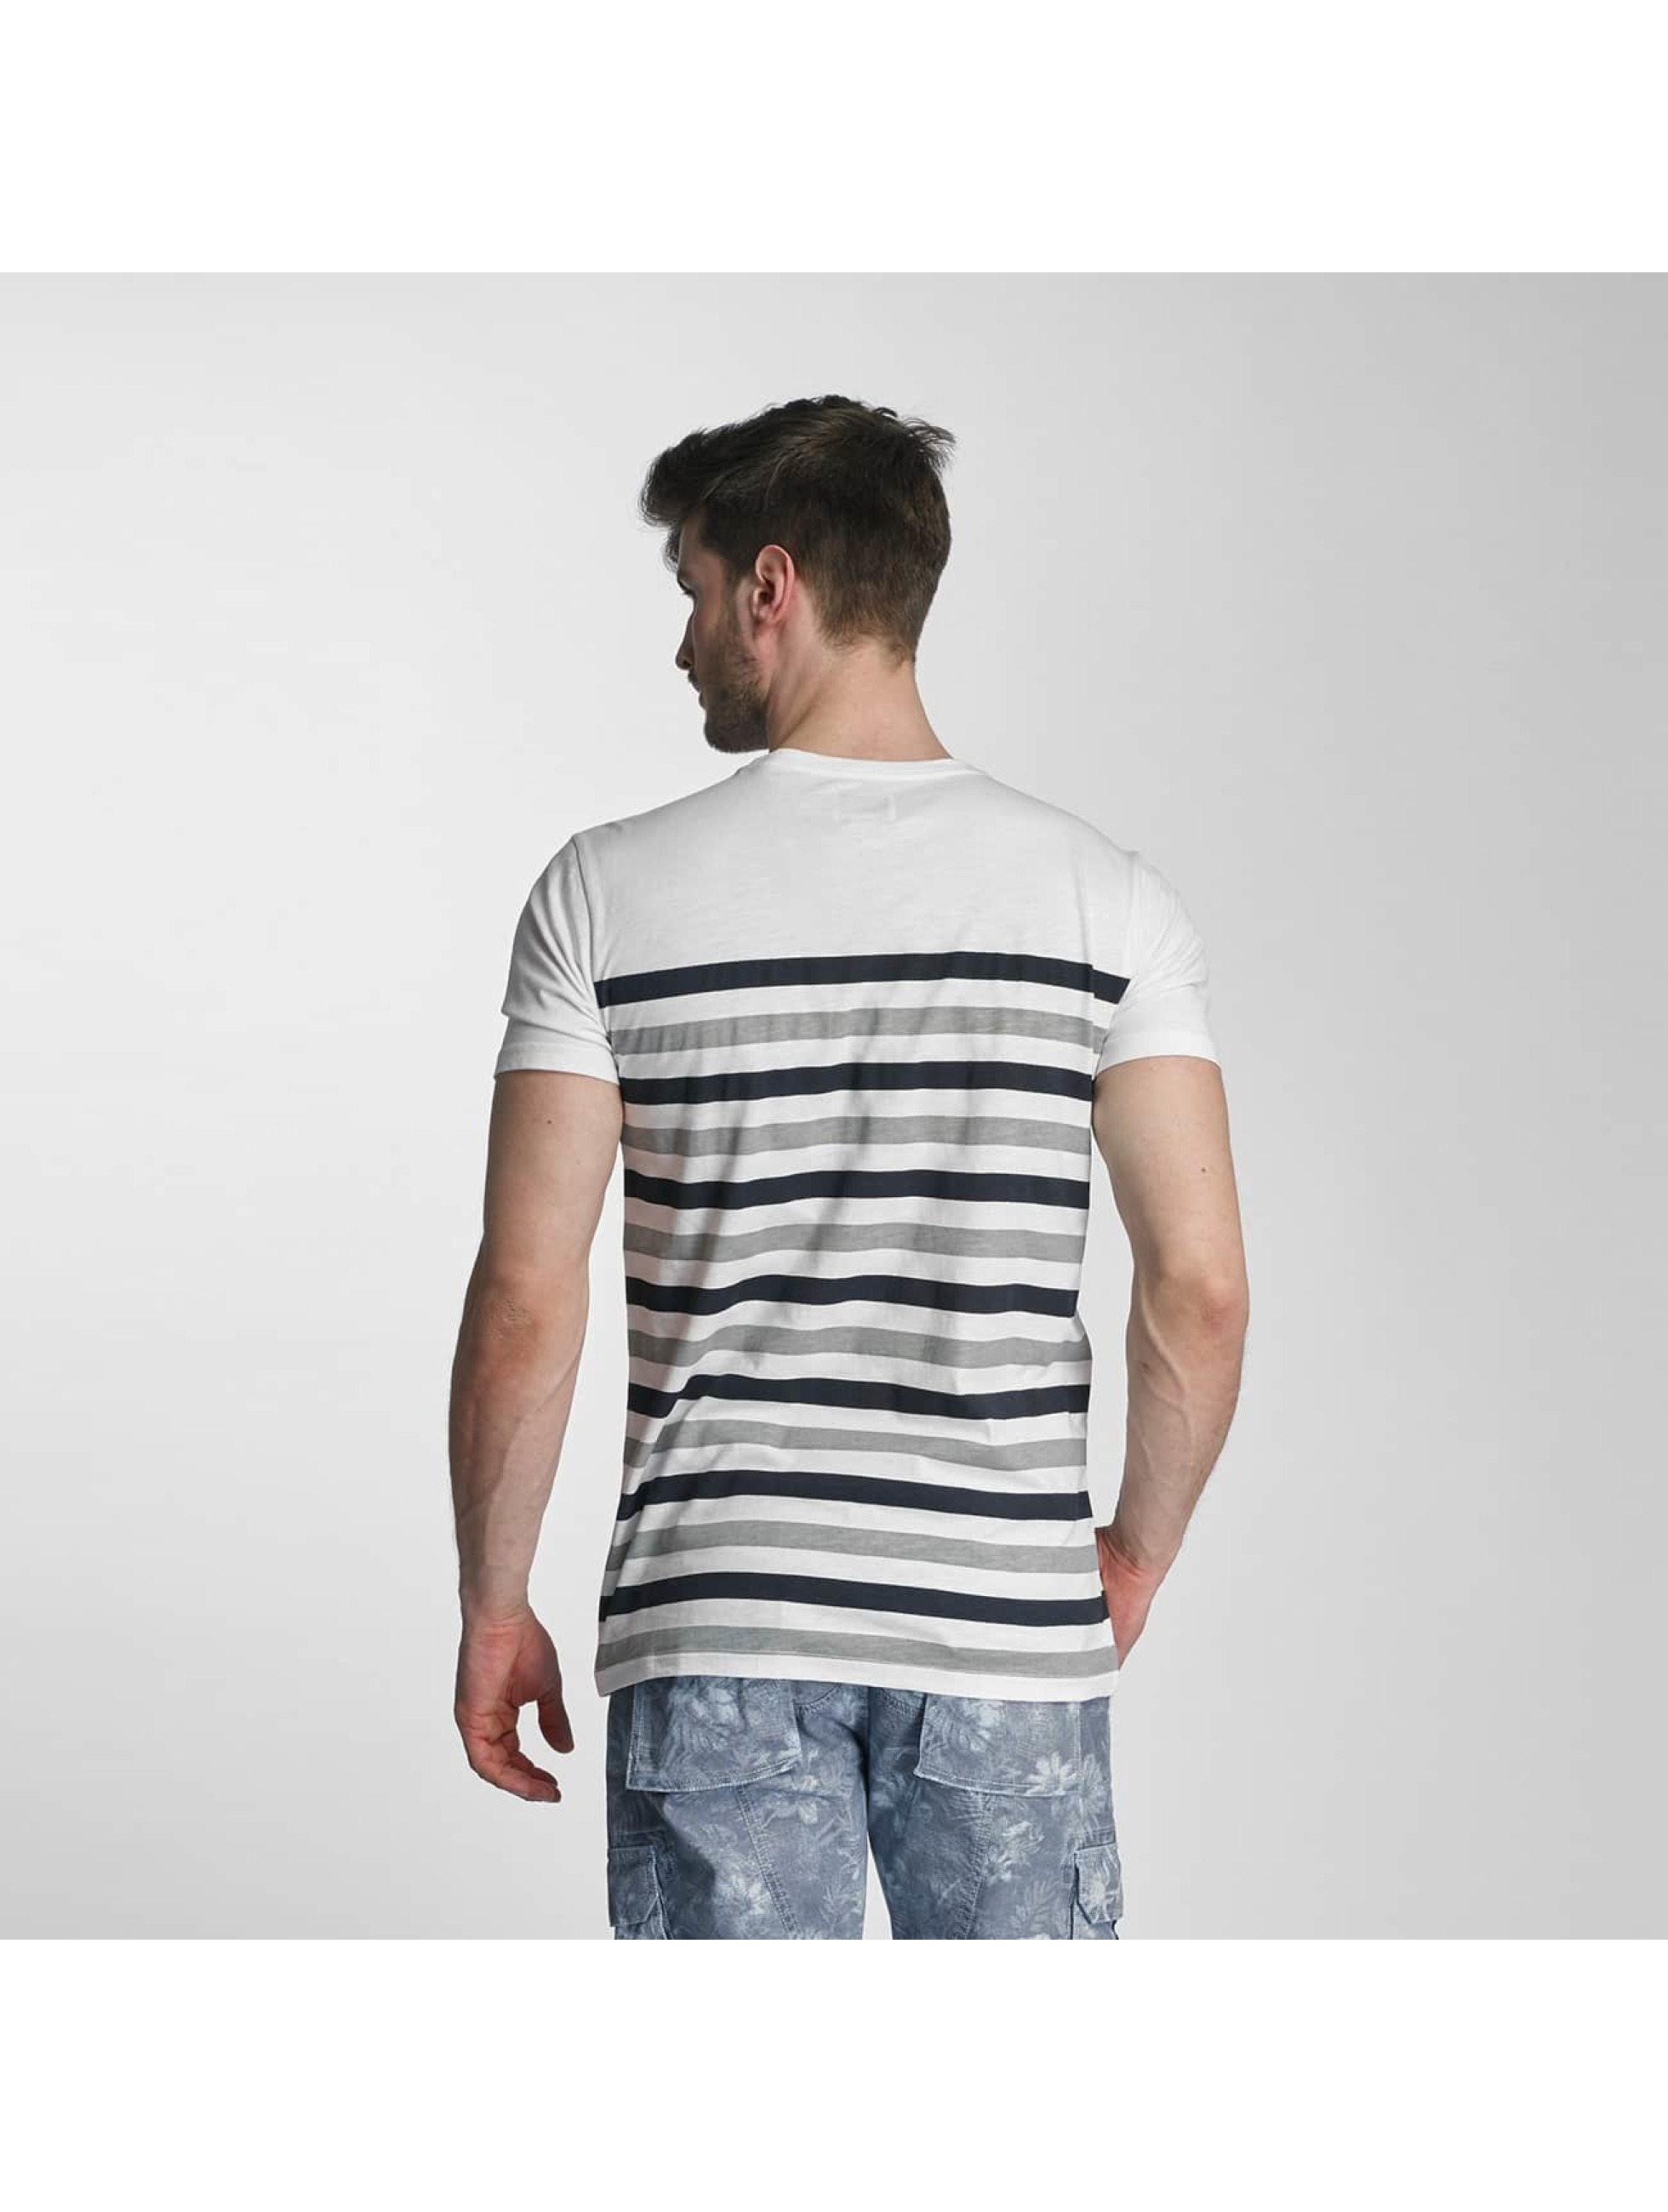 SHINE Original t-shirt Striped grijs